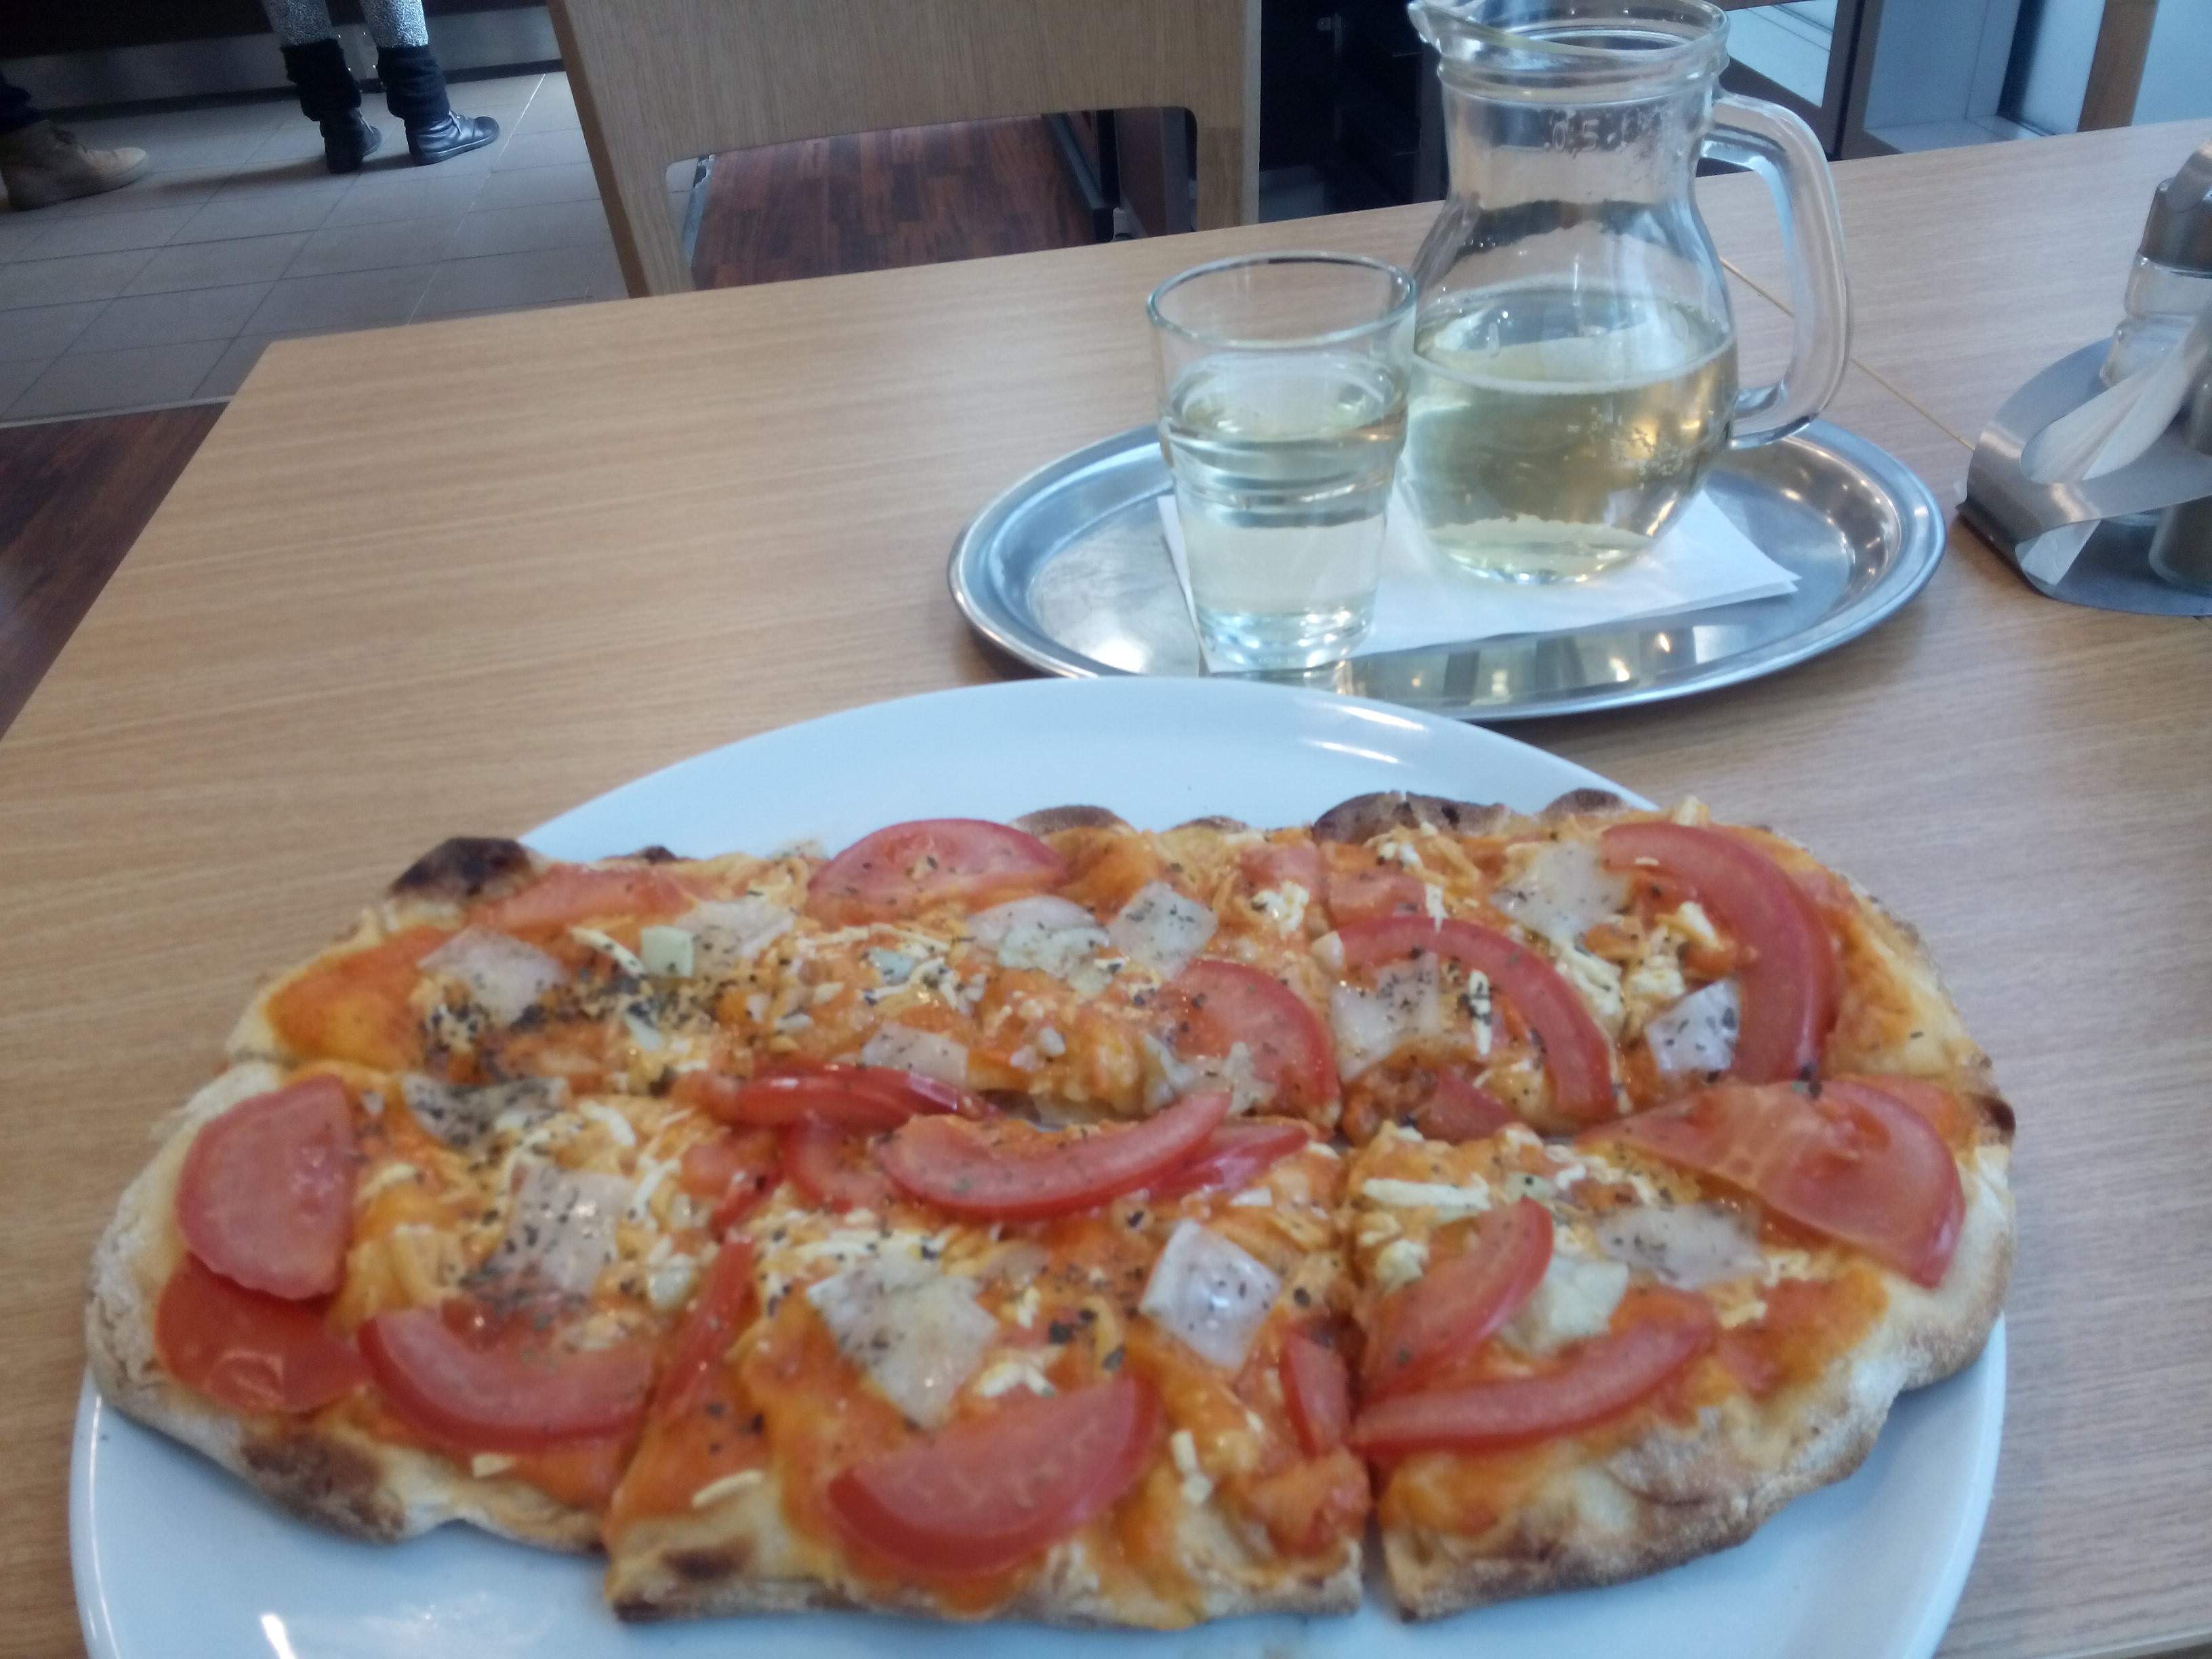 A tomato-covered pizza on a white plate, on a brown table